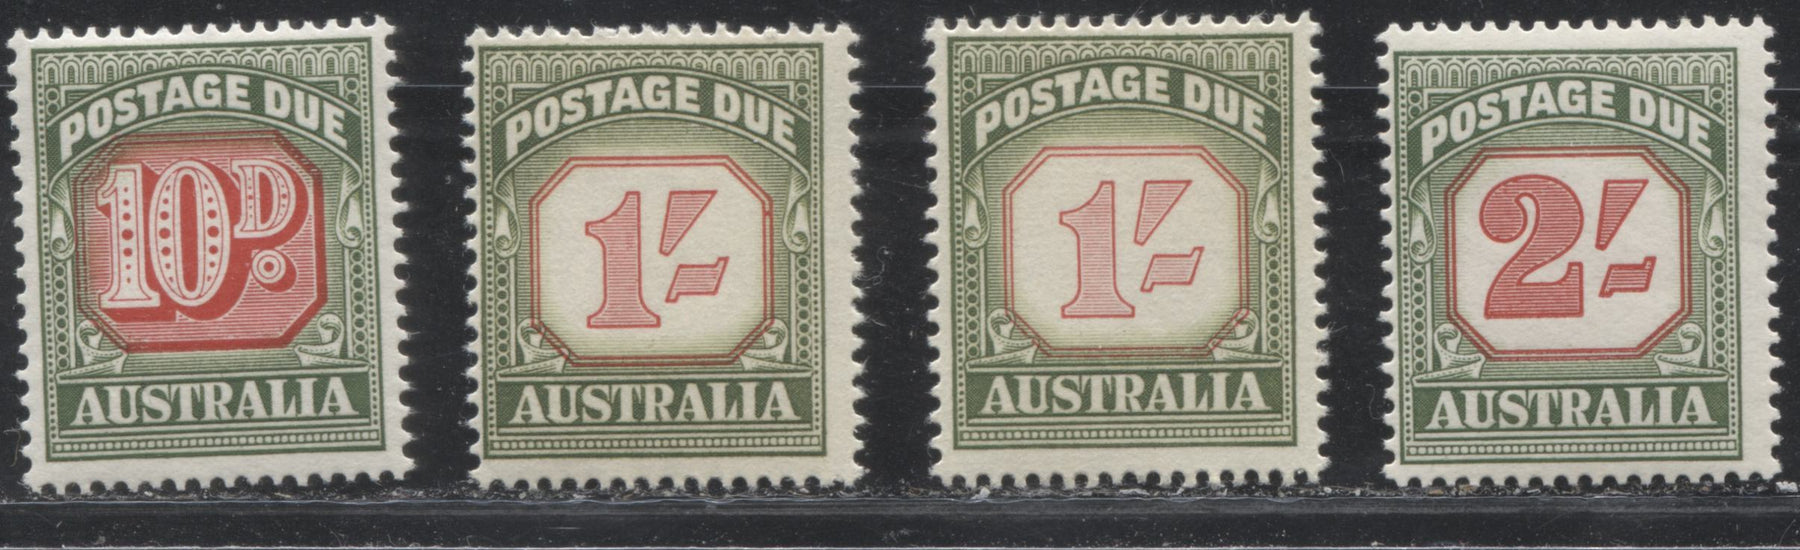 Australia #J93-J95 (SG#D139-D141) 10d - 2/- Green & Carmine Red 1958-1960 Redrawn Postage Dues, No Watermark, Fine NH Examples Showing a Range of Shades